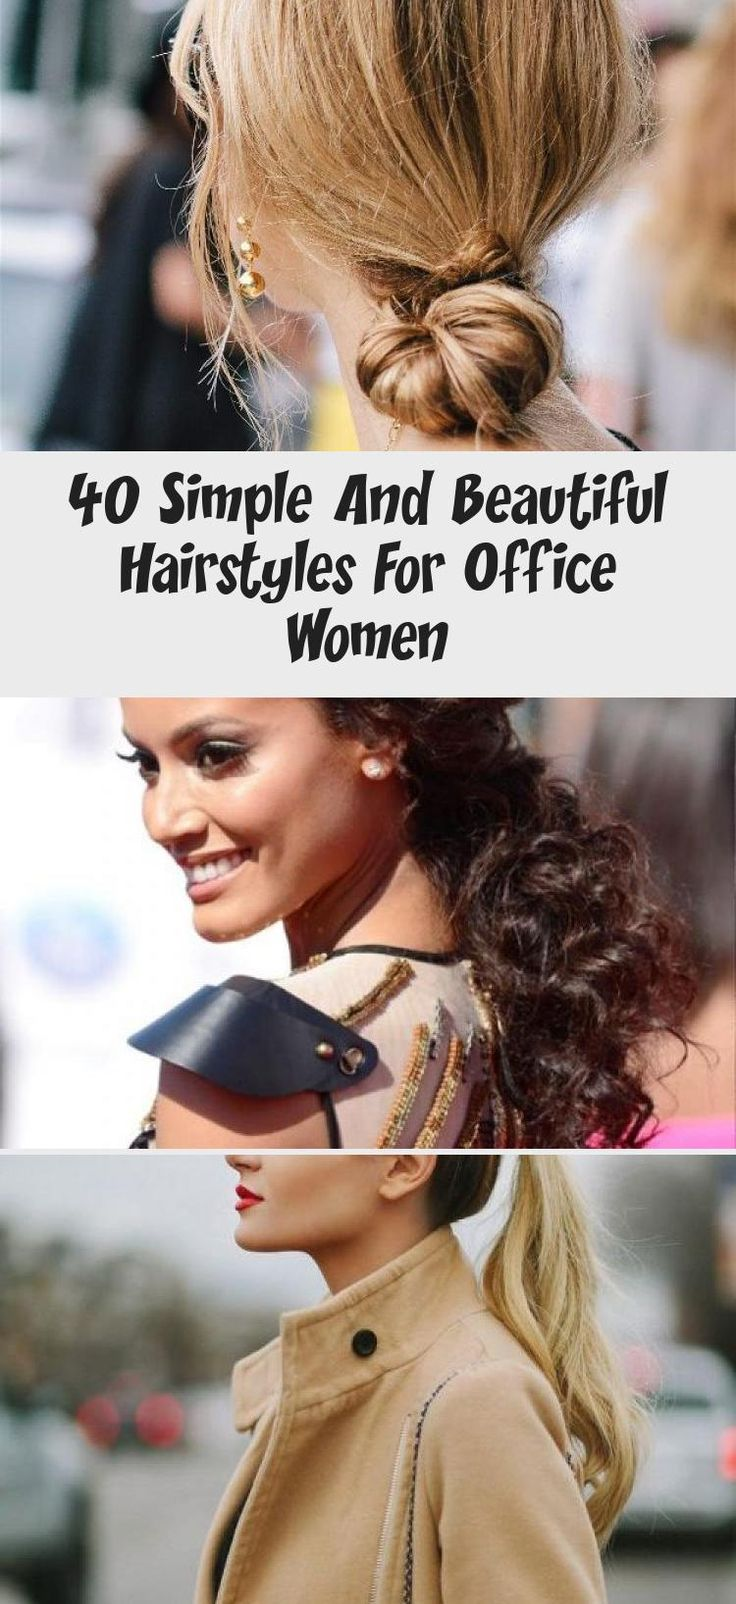 40 Simple And Beautiful Hairstyles For Office Women » EcstasyCoffee #summerhairstylesHaircuts #summerhairstylesTutorials #summerhairstylesIdeas #Coolsummerhairstyles #summerhairstyles2018